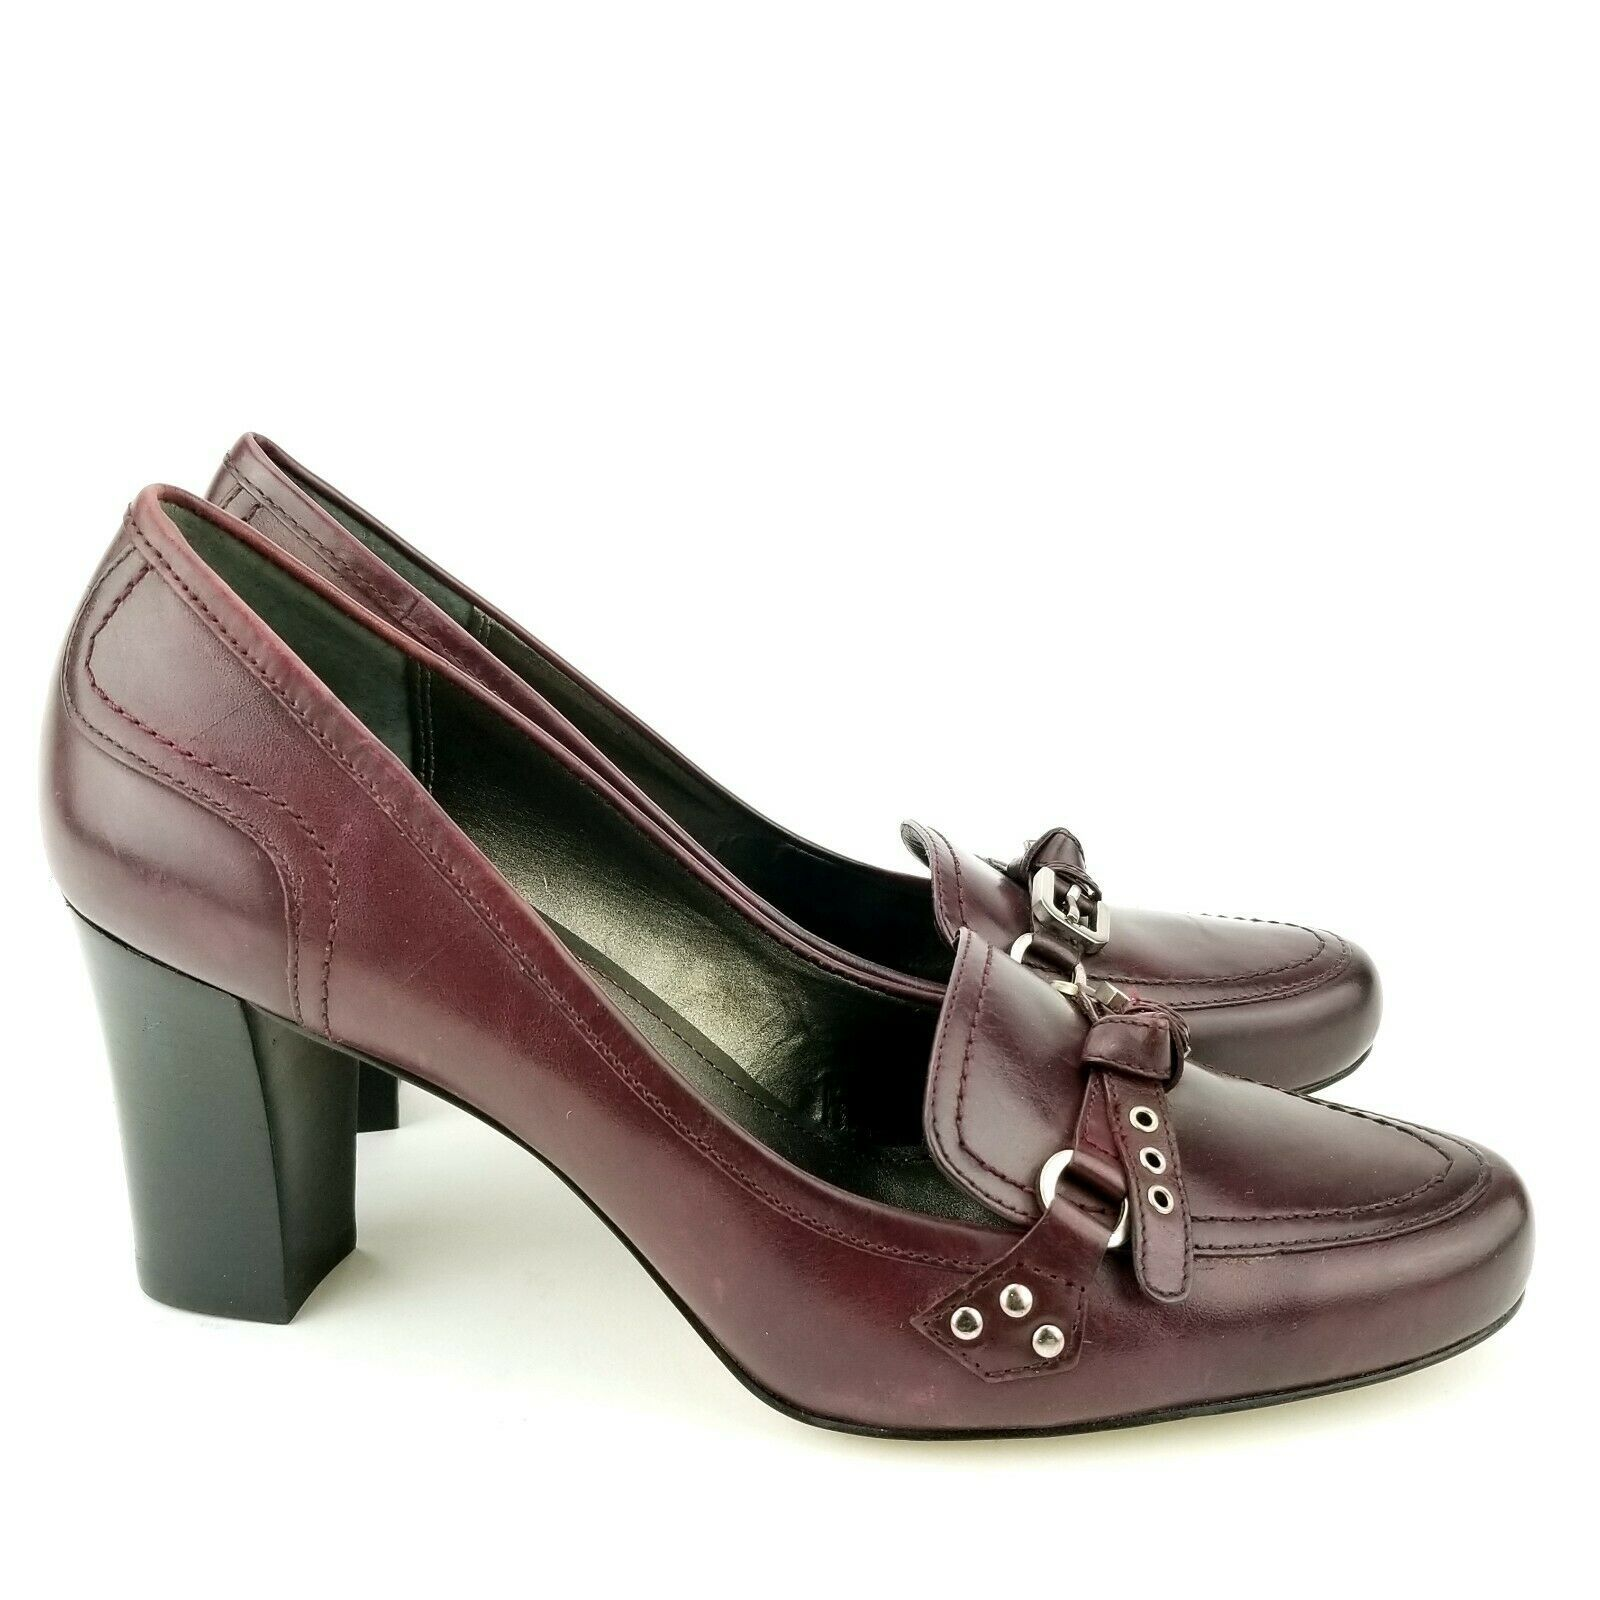 Franco Sarto Burgundy Women's Leather Pump Size 10 M Dickens